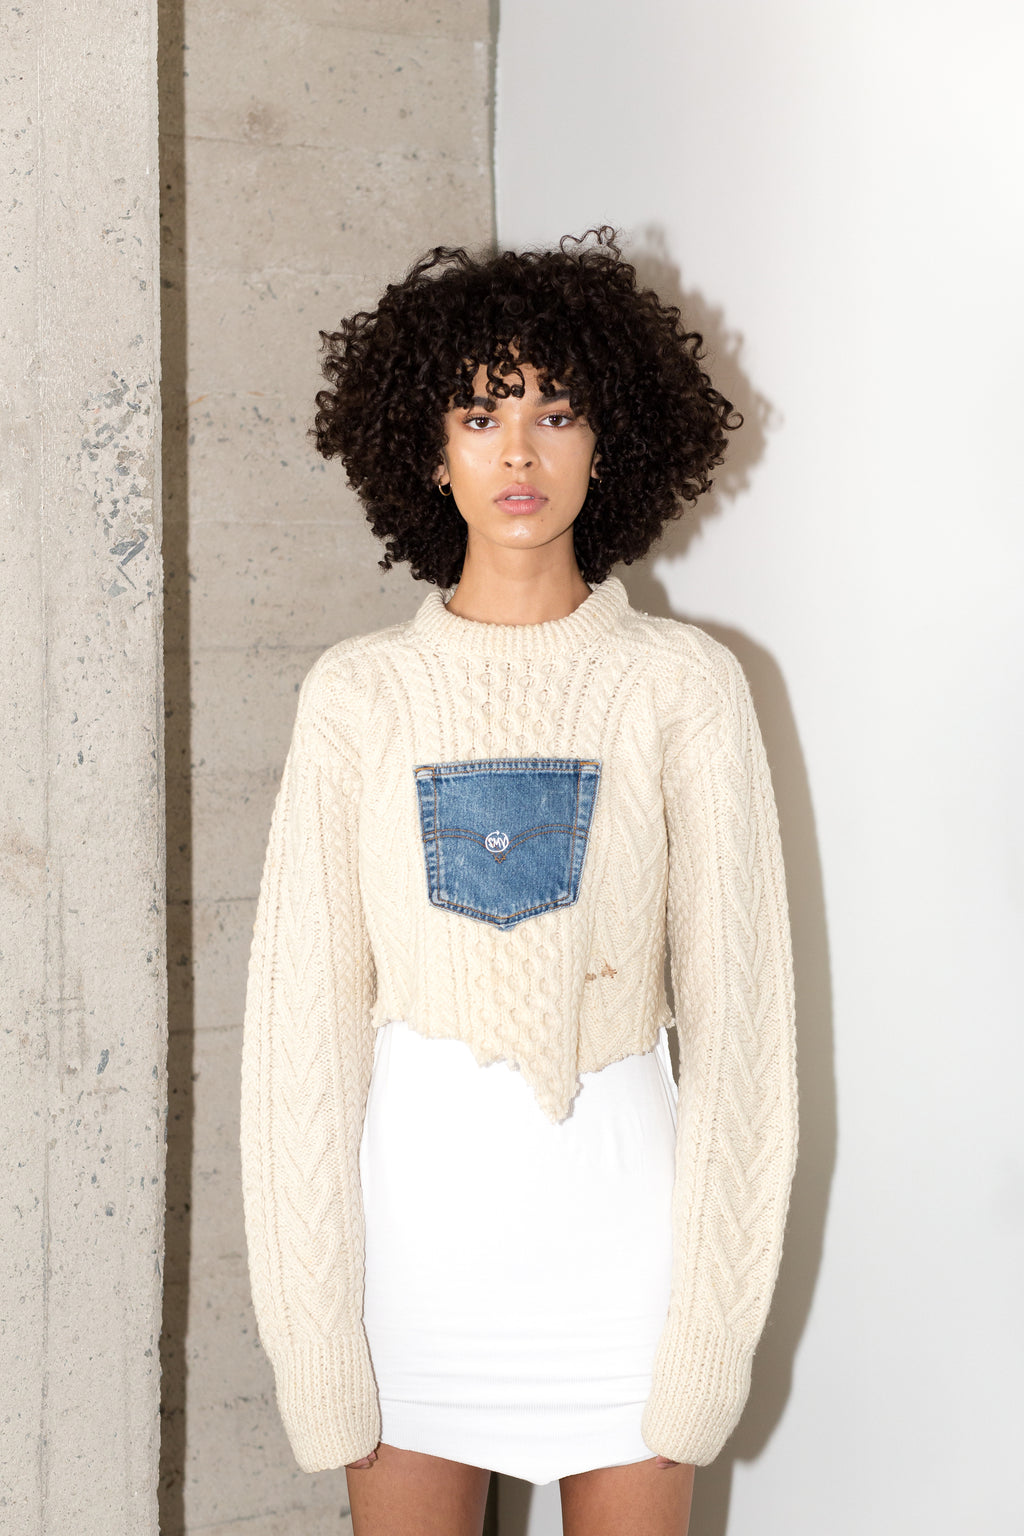 BRANZINO SWEATER CROP IN BLUE DENIM